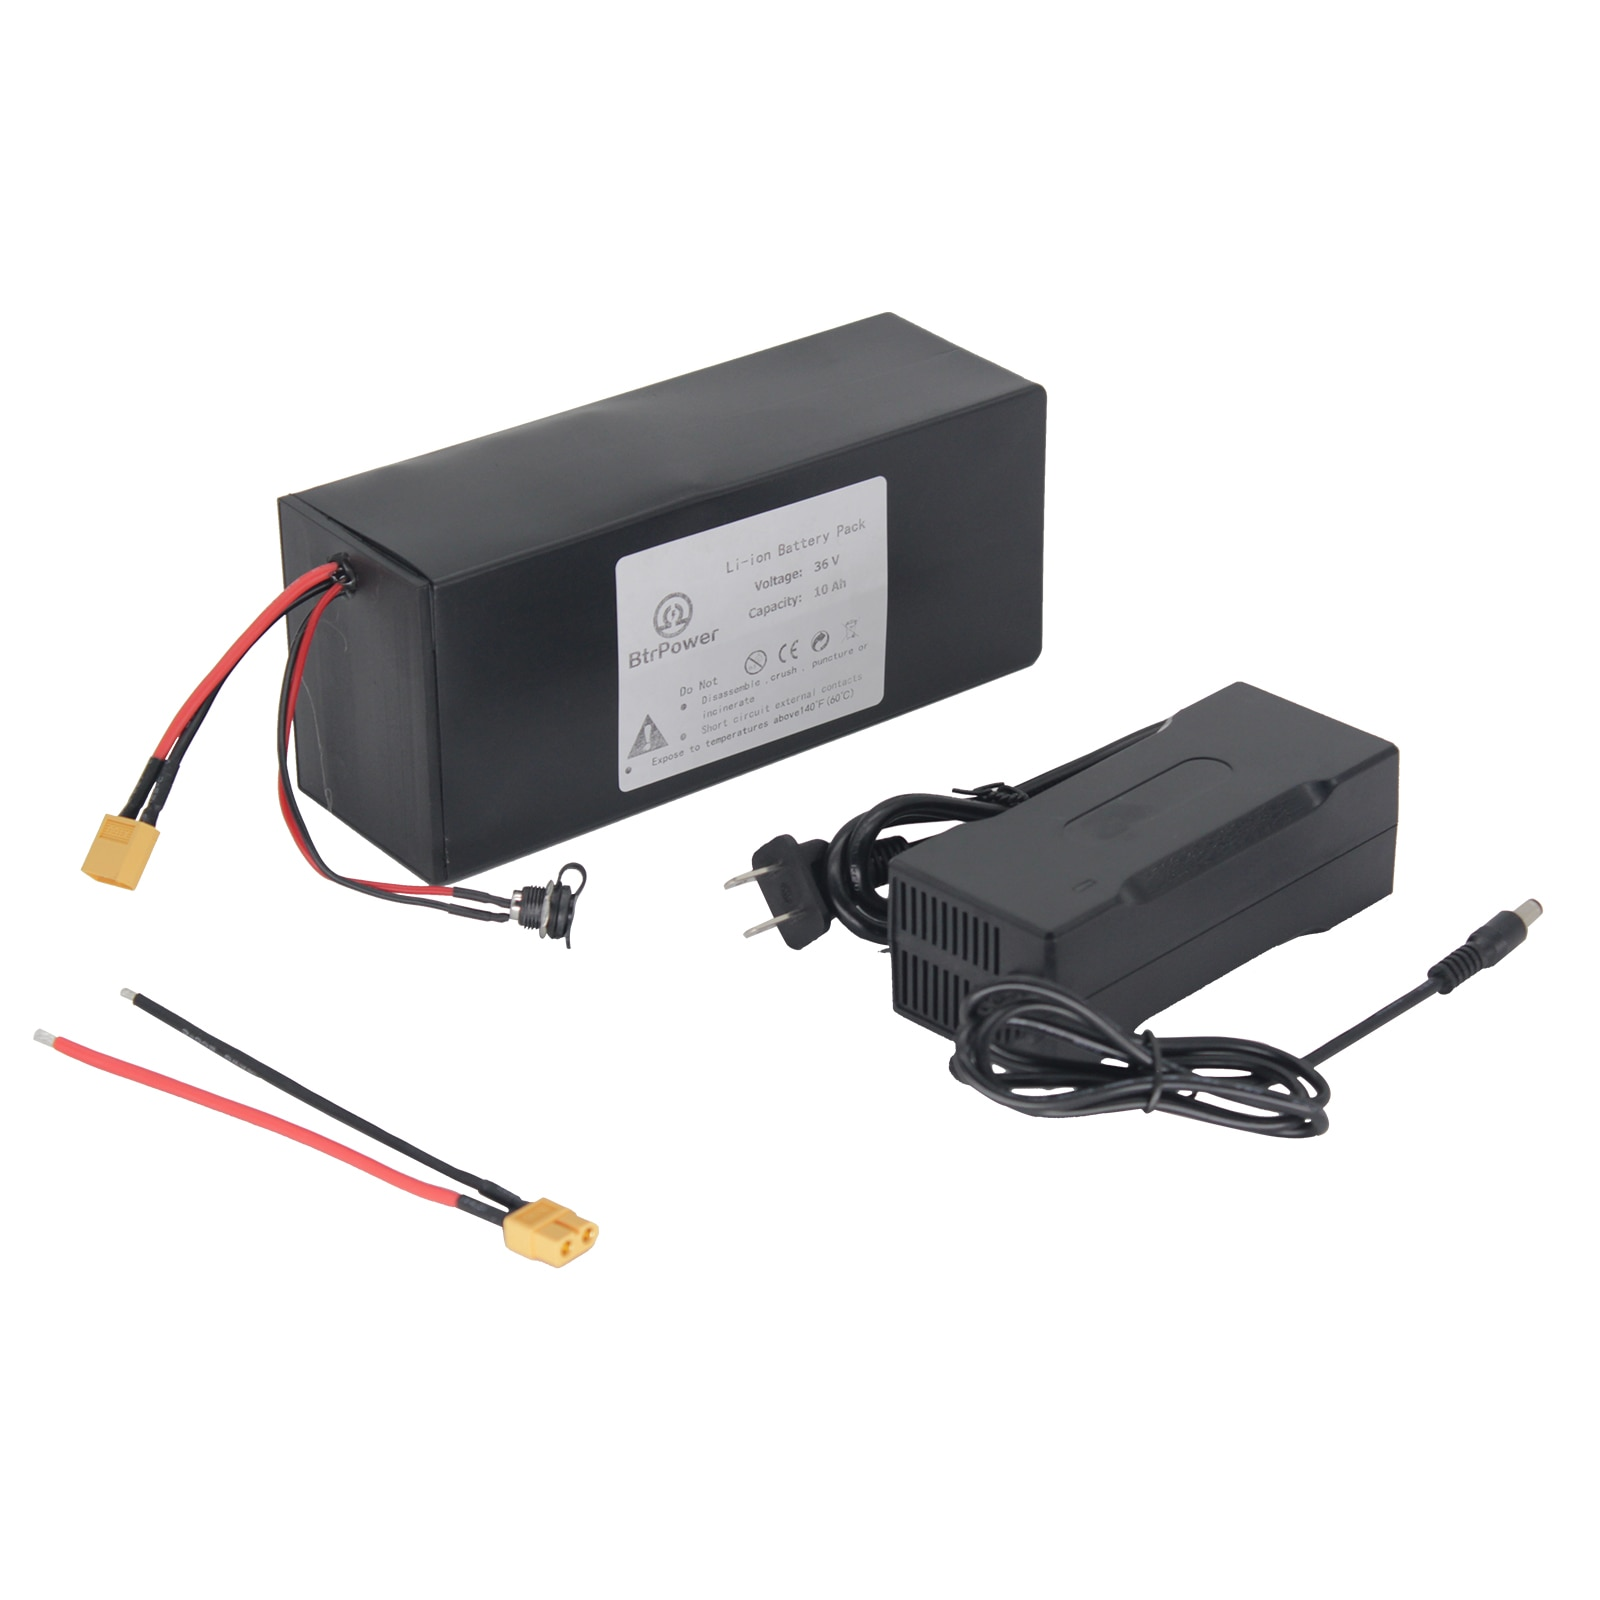 36 V 10 AH E Bike Lithuim-Ion Battery Pack with 3 A Charger 20A BMS High Temperature Resistance Fast Charging Outdoor Daily Use